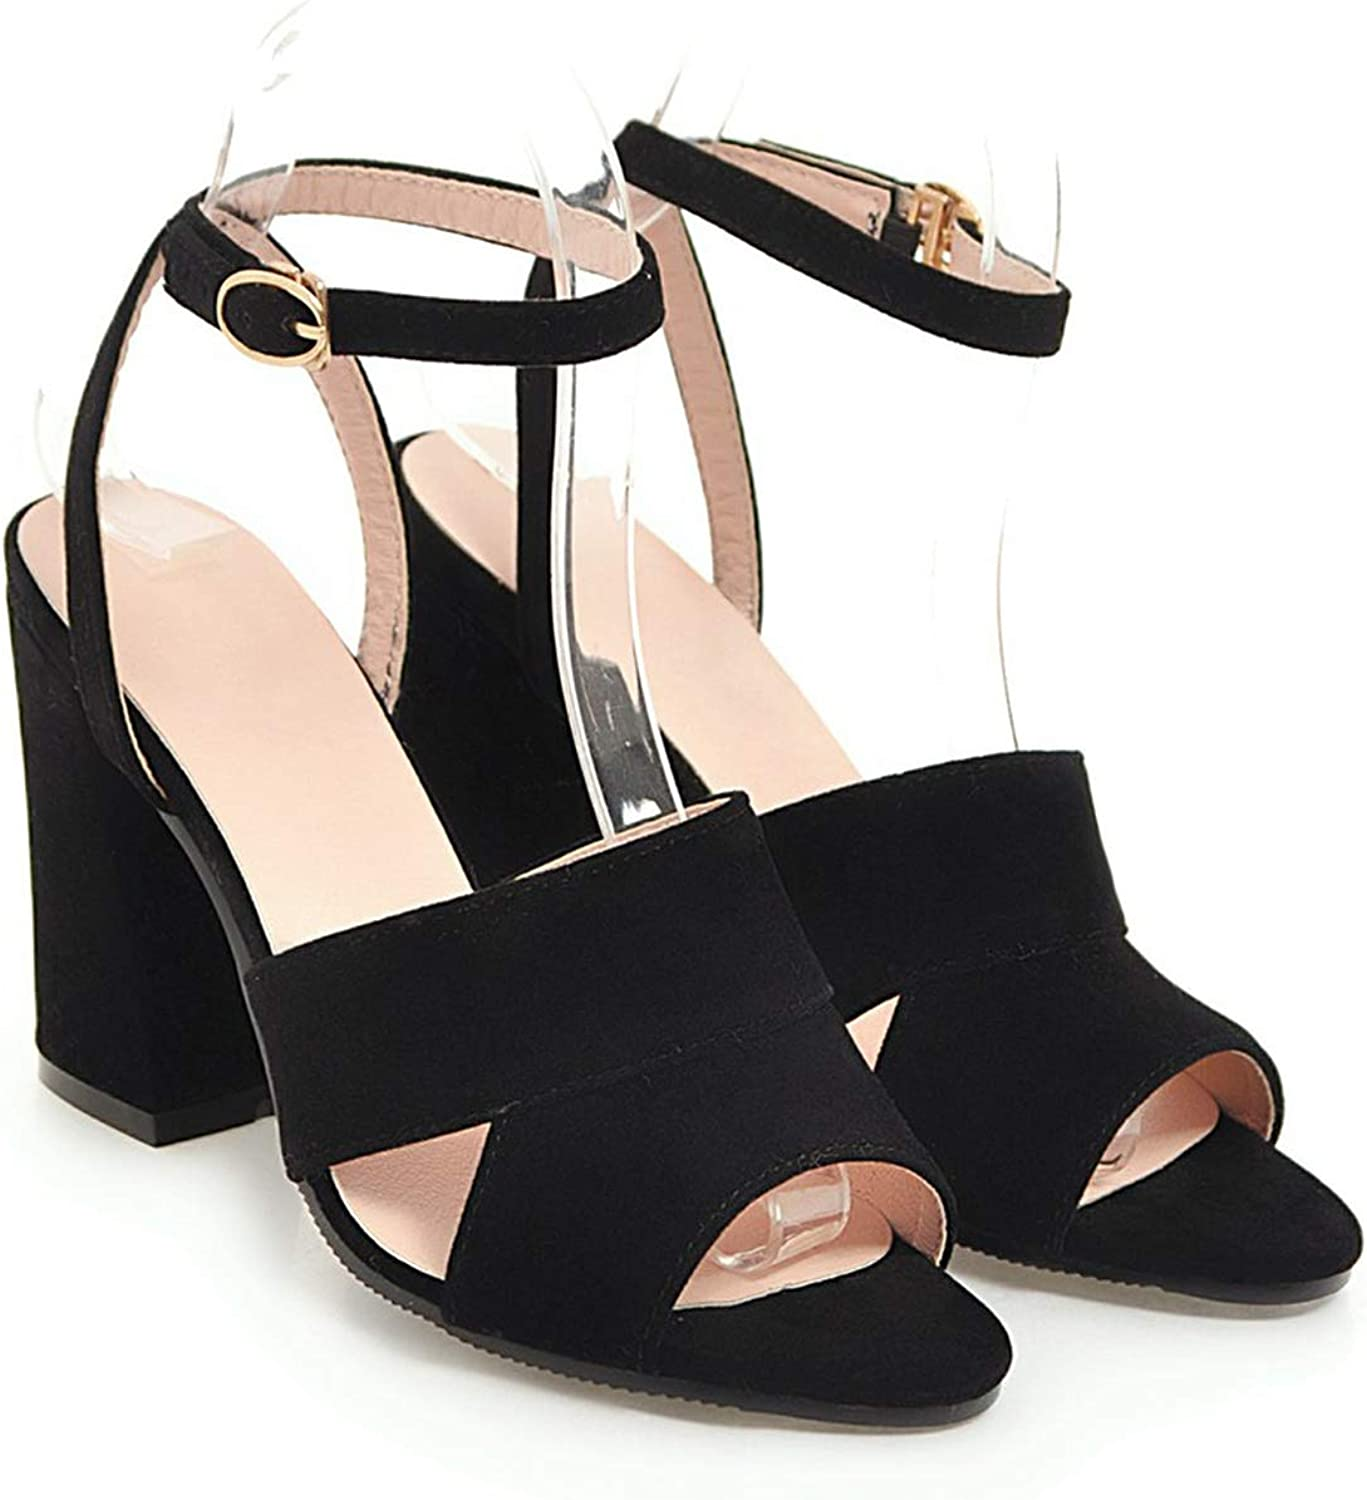 Mo Duo 2019 New Sexy Ankle Strap Women Sandals high Heels Sandals peep Toe Summer Women shoes